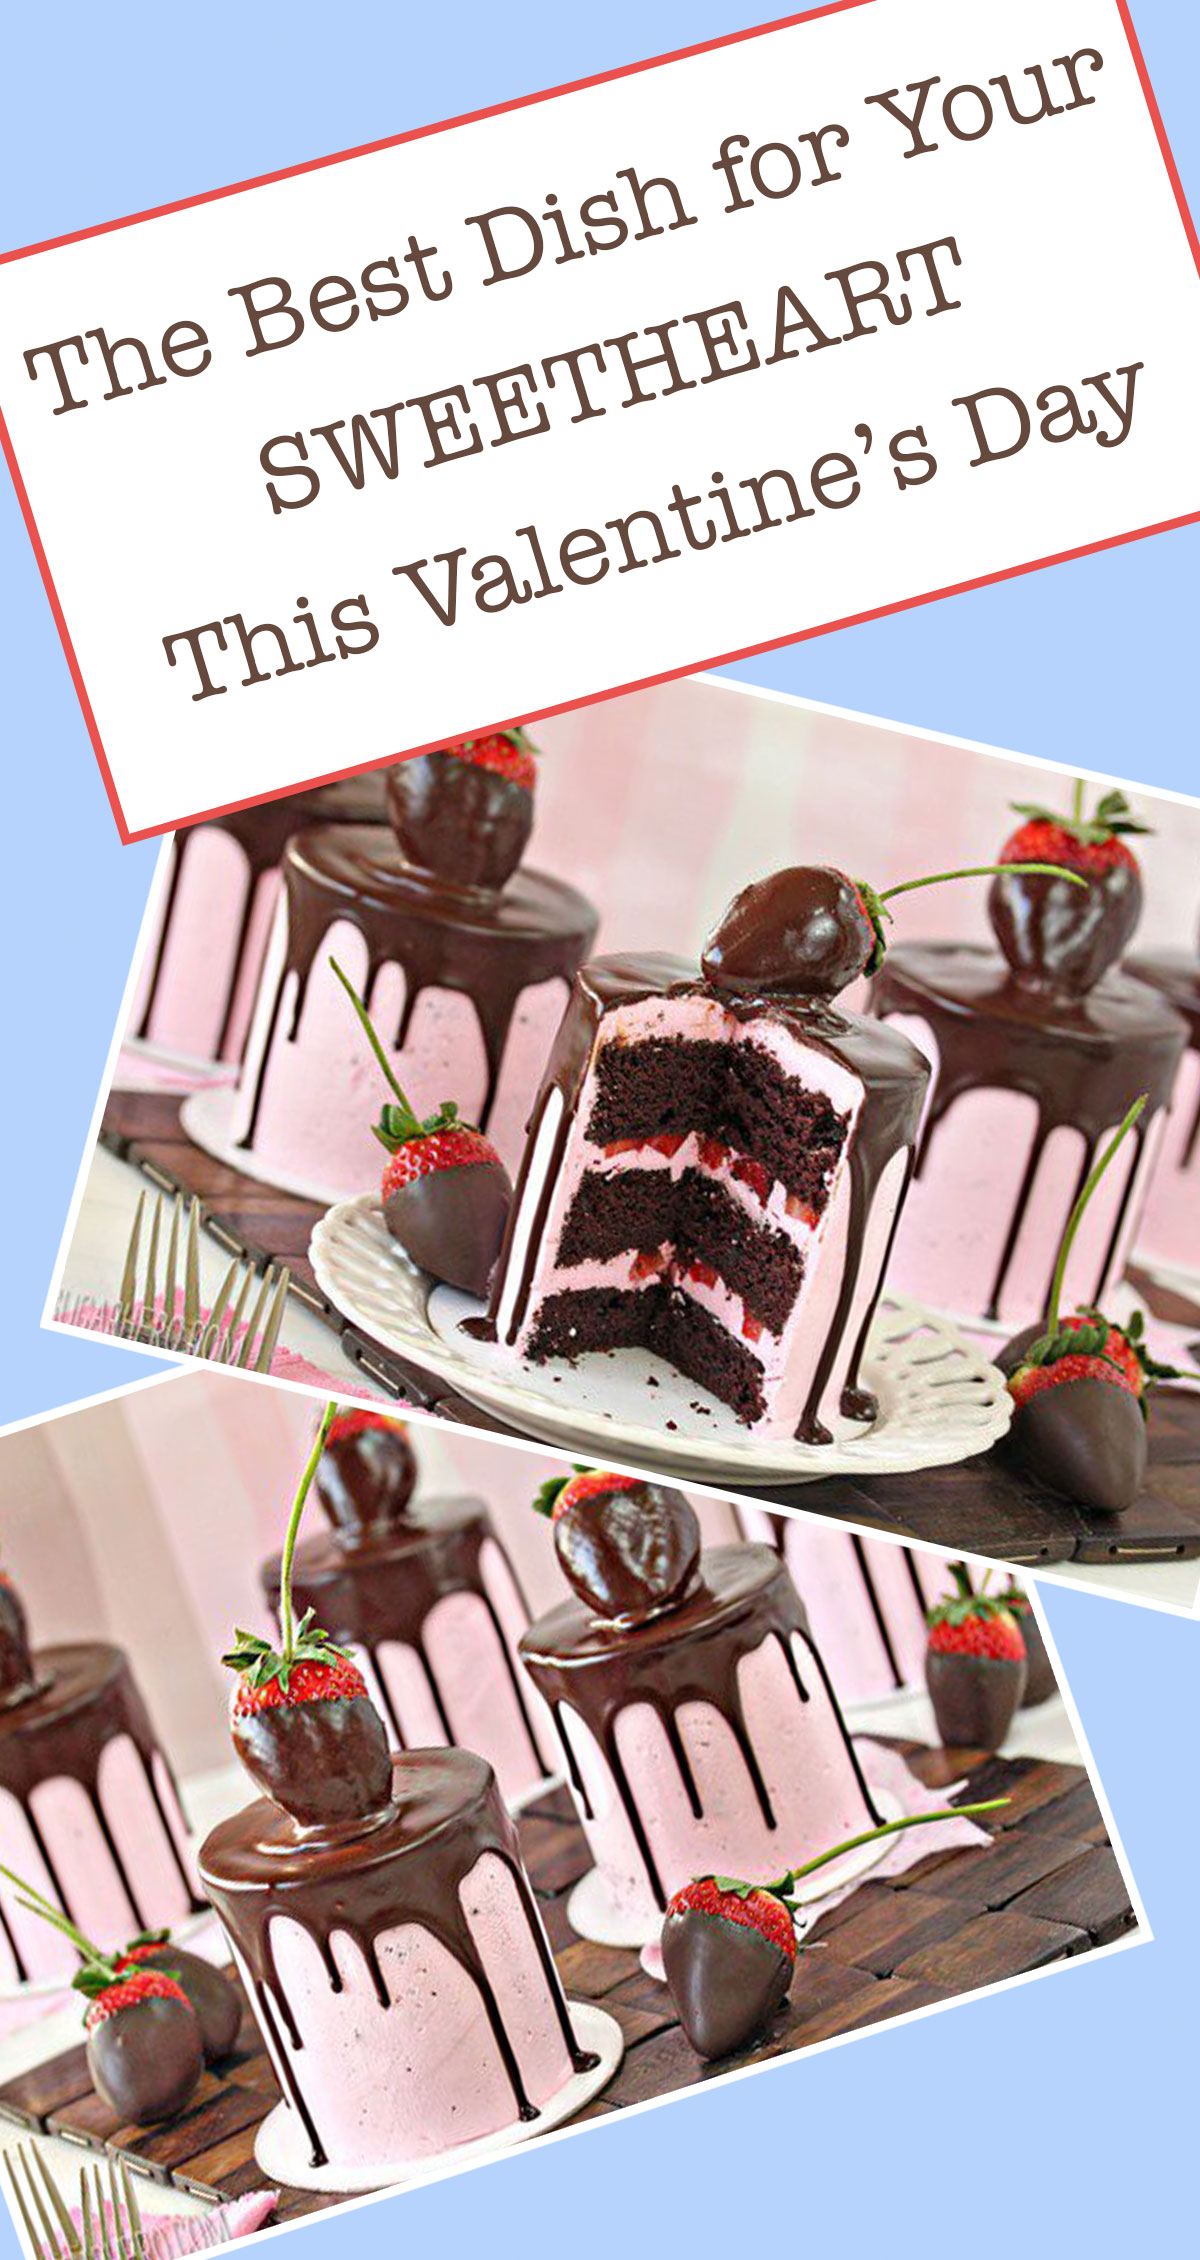 The Best Sweet Dish for Your Sweetheart This Valentine's Day Pin